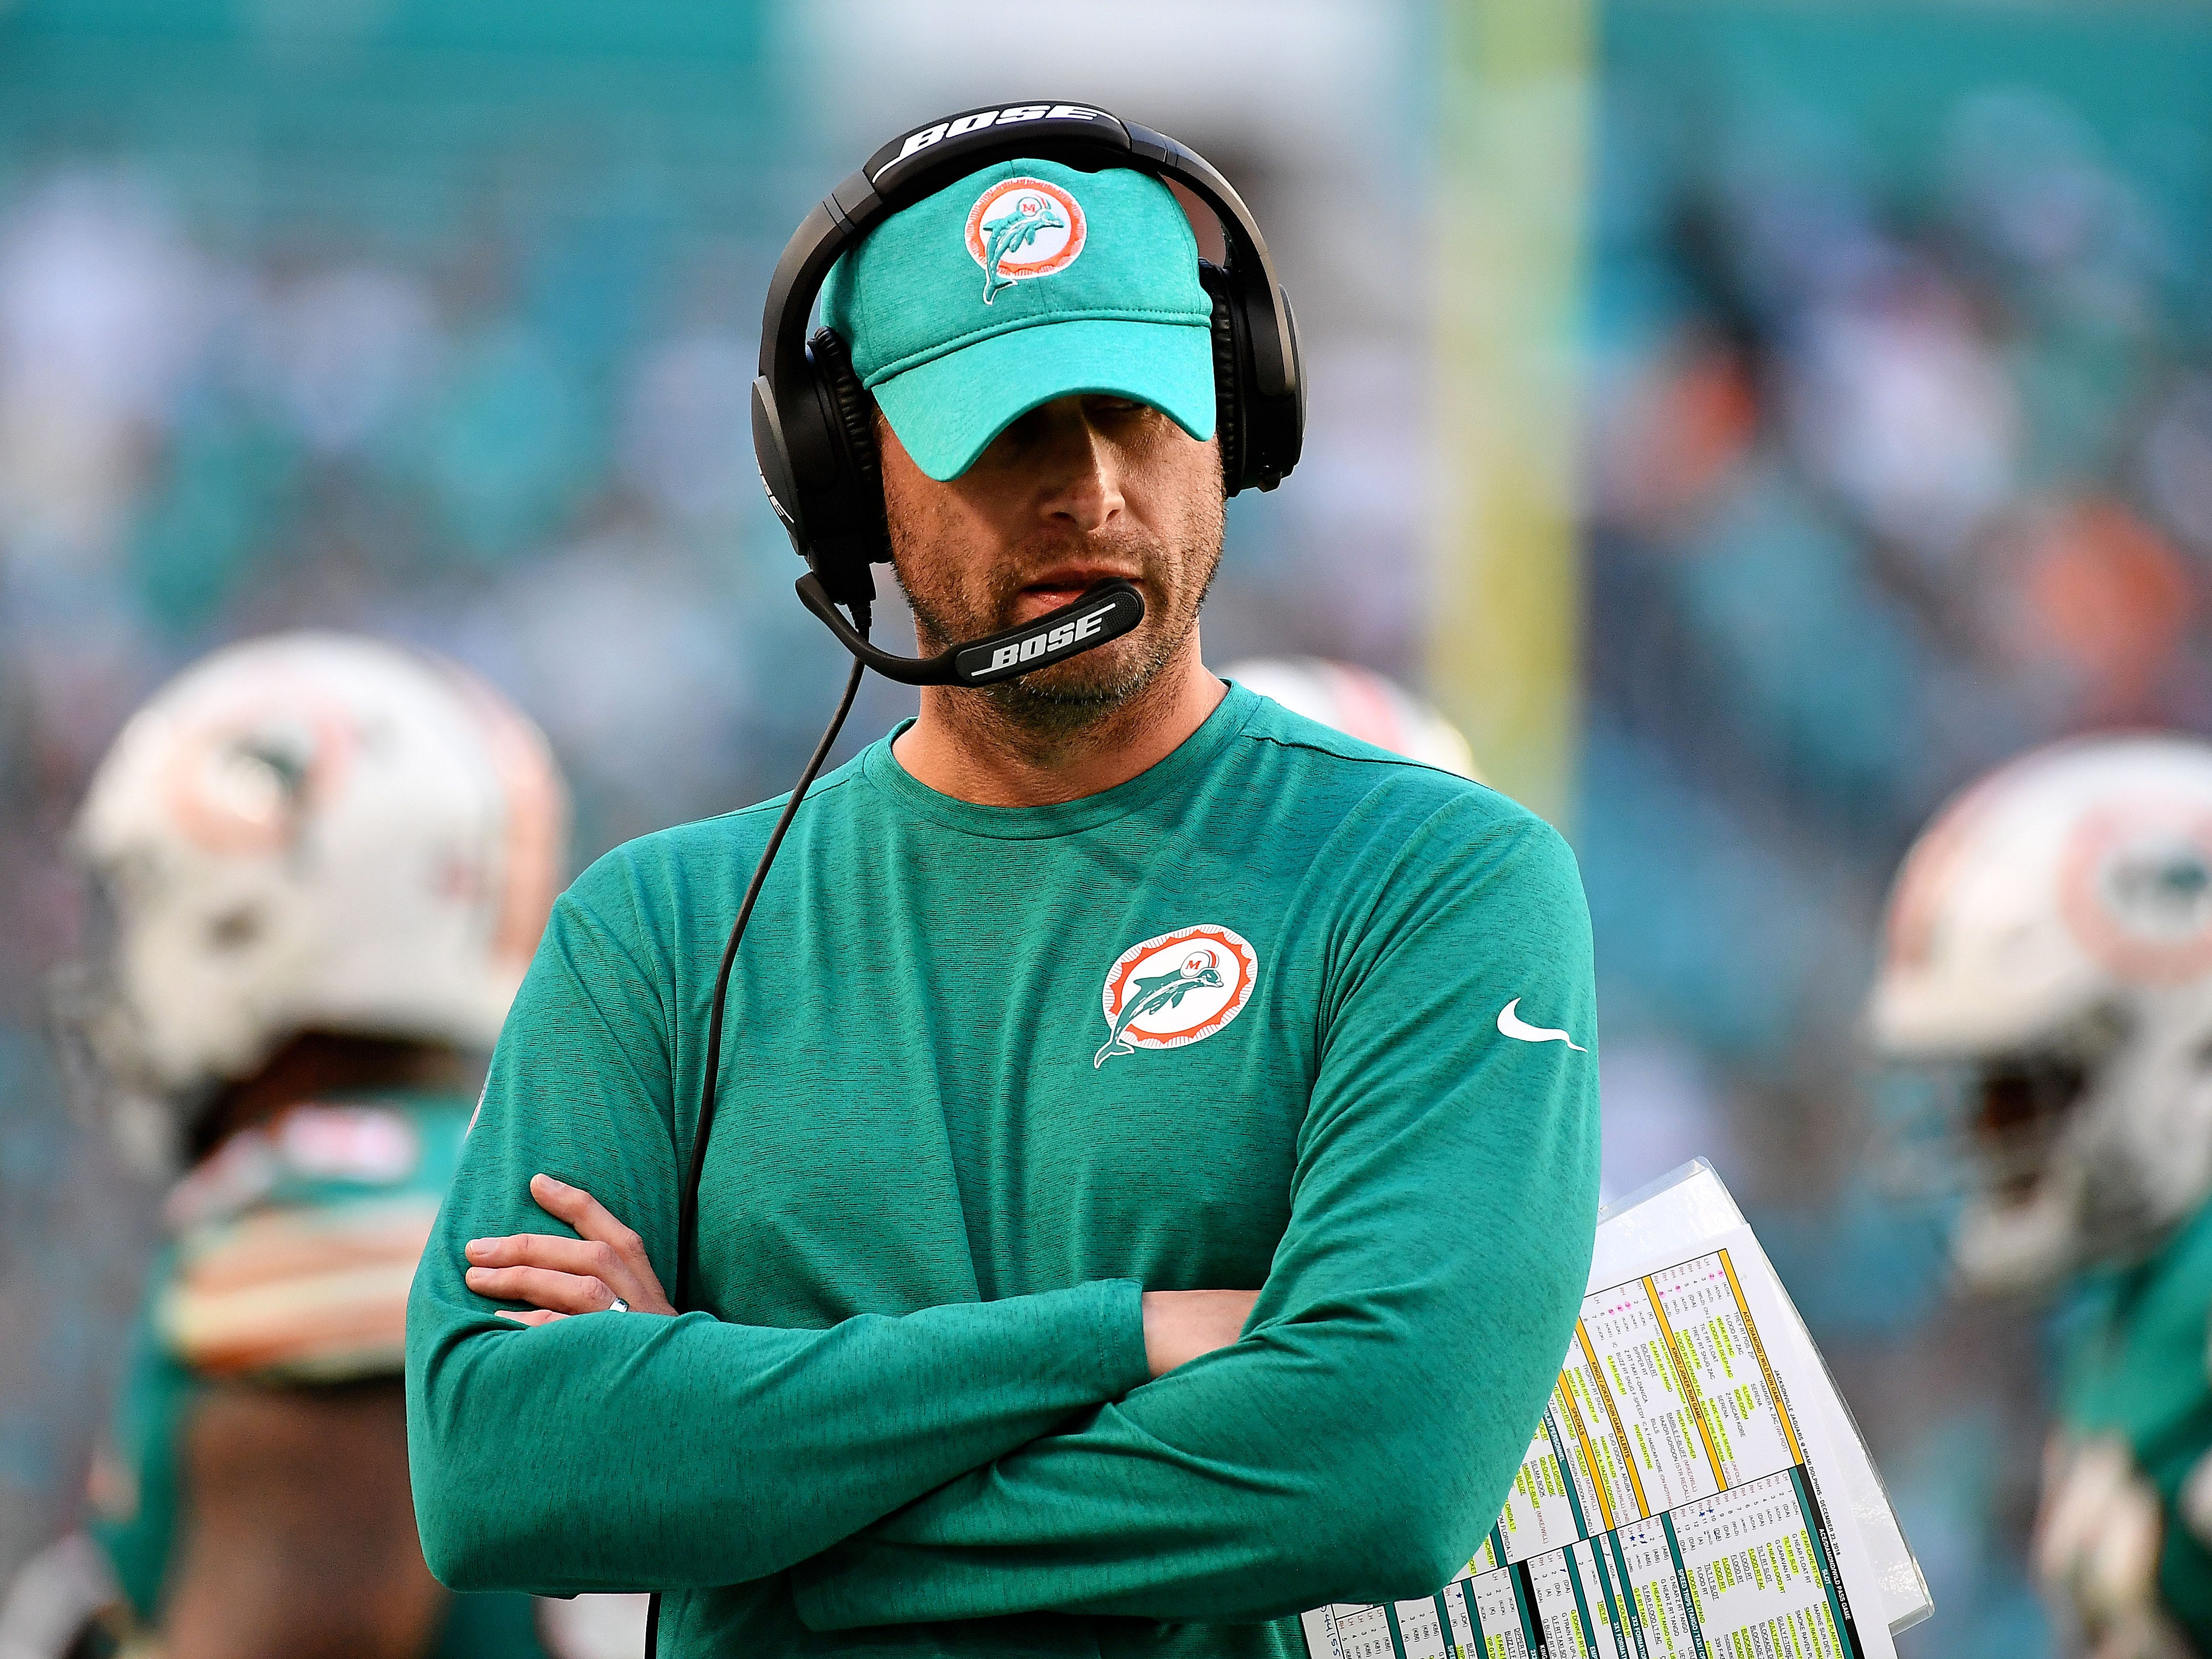 24. Dolphins (17): If you're Adam Gase, would you even want to return to this mess? As Brett Favre once advised, take two weeks off ... then quit (which is pretty much what Miami just did).